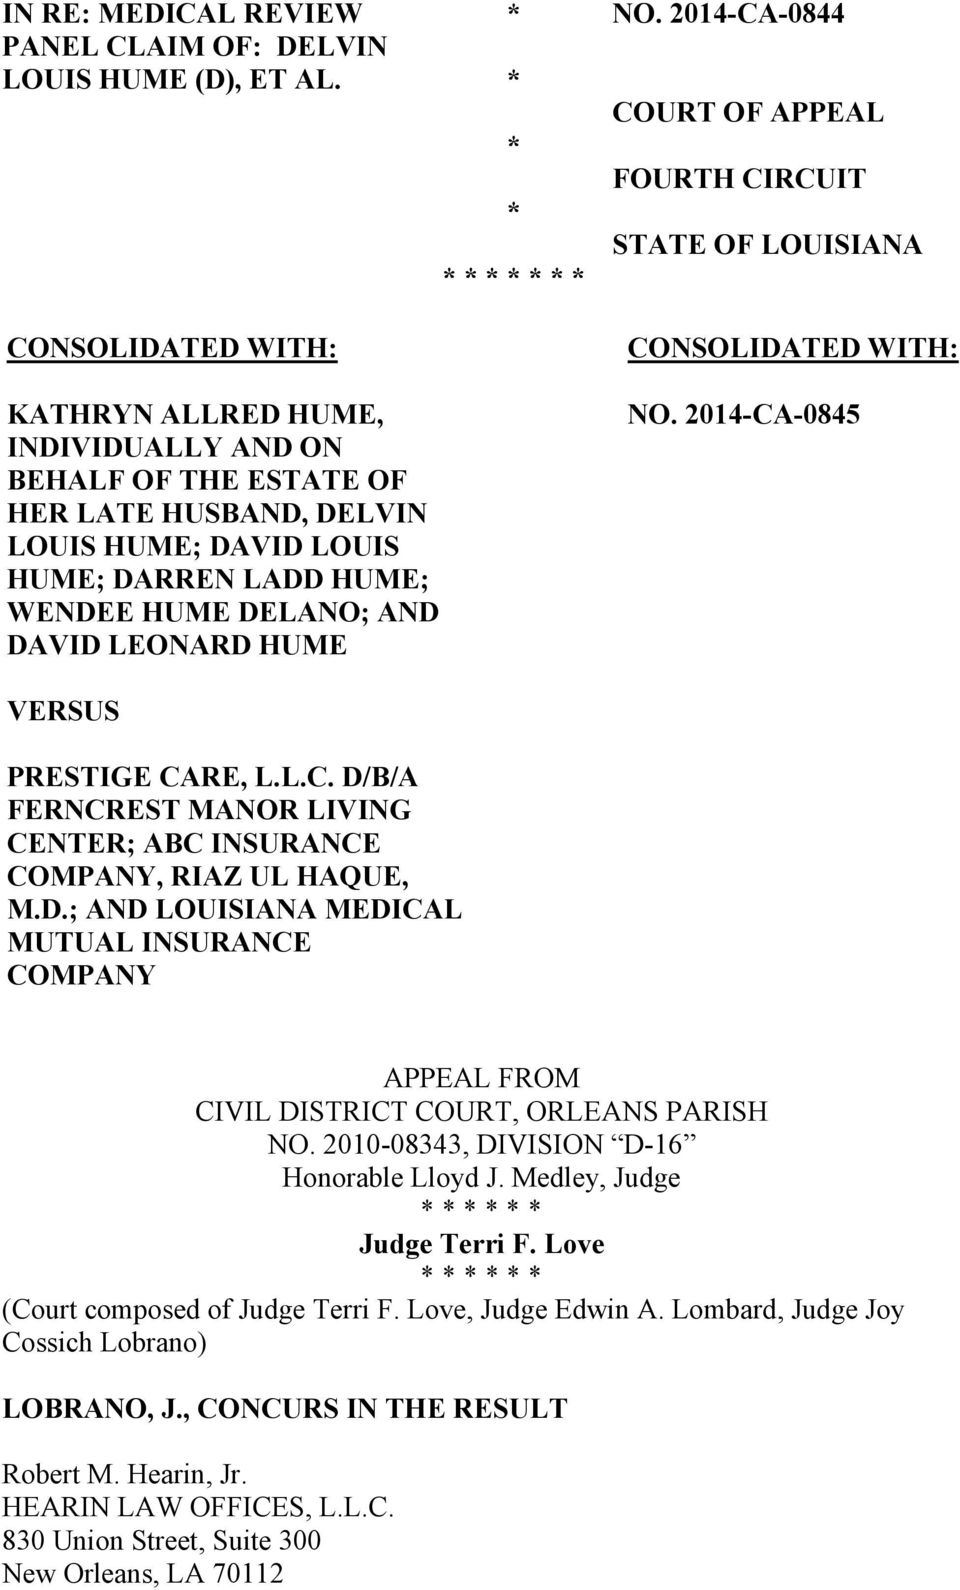 HUME; DARREN LADD HUME; WENDEE HUME DELANO; AND DAVID LEONARD HUME NO. 2014-CA-0845 VERSUS PRESTIGE CARE, L.L.C. D/B/A FERNCREST MANOR LIVING CENTER; ABC INSURANCE COMPANY, RIAZ UL HAQUE, M.D.; AND LOUISIANA MEDICAL MUTUAL INSURANCE COMPANY APPEAL FROM CIVIL DISTRICT COURT, ORLEANS PARISH NO.